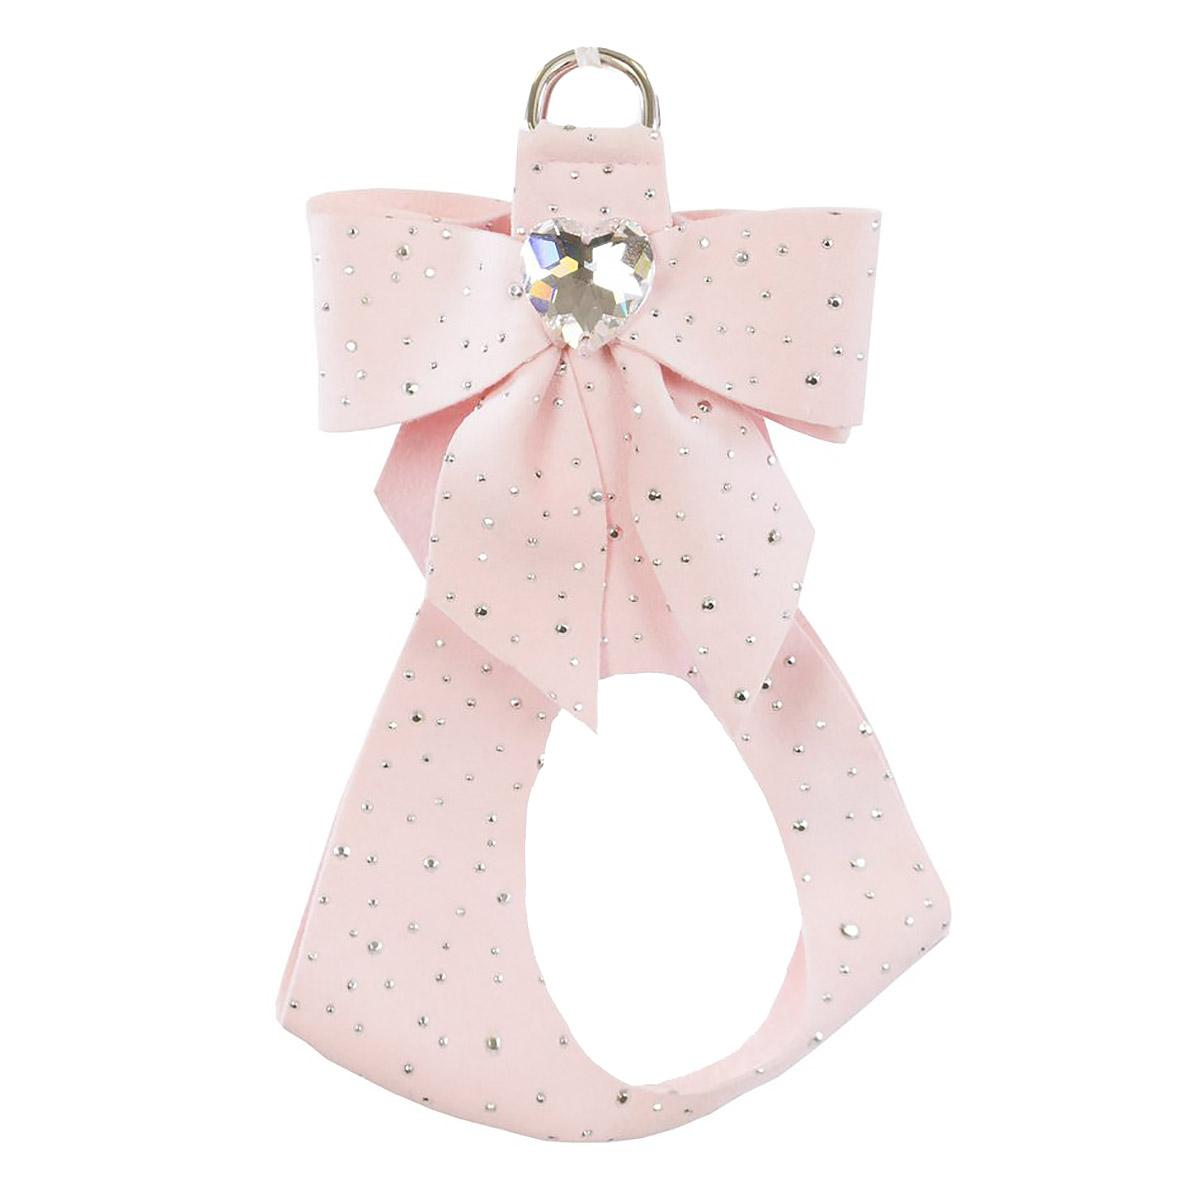 Stardust Tail Bow Heart Step-In Dog Harness by Susan Lanci - Puppy Pink